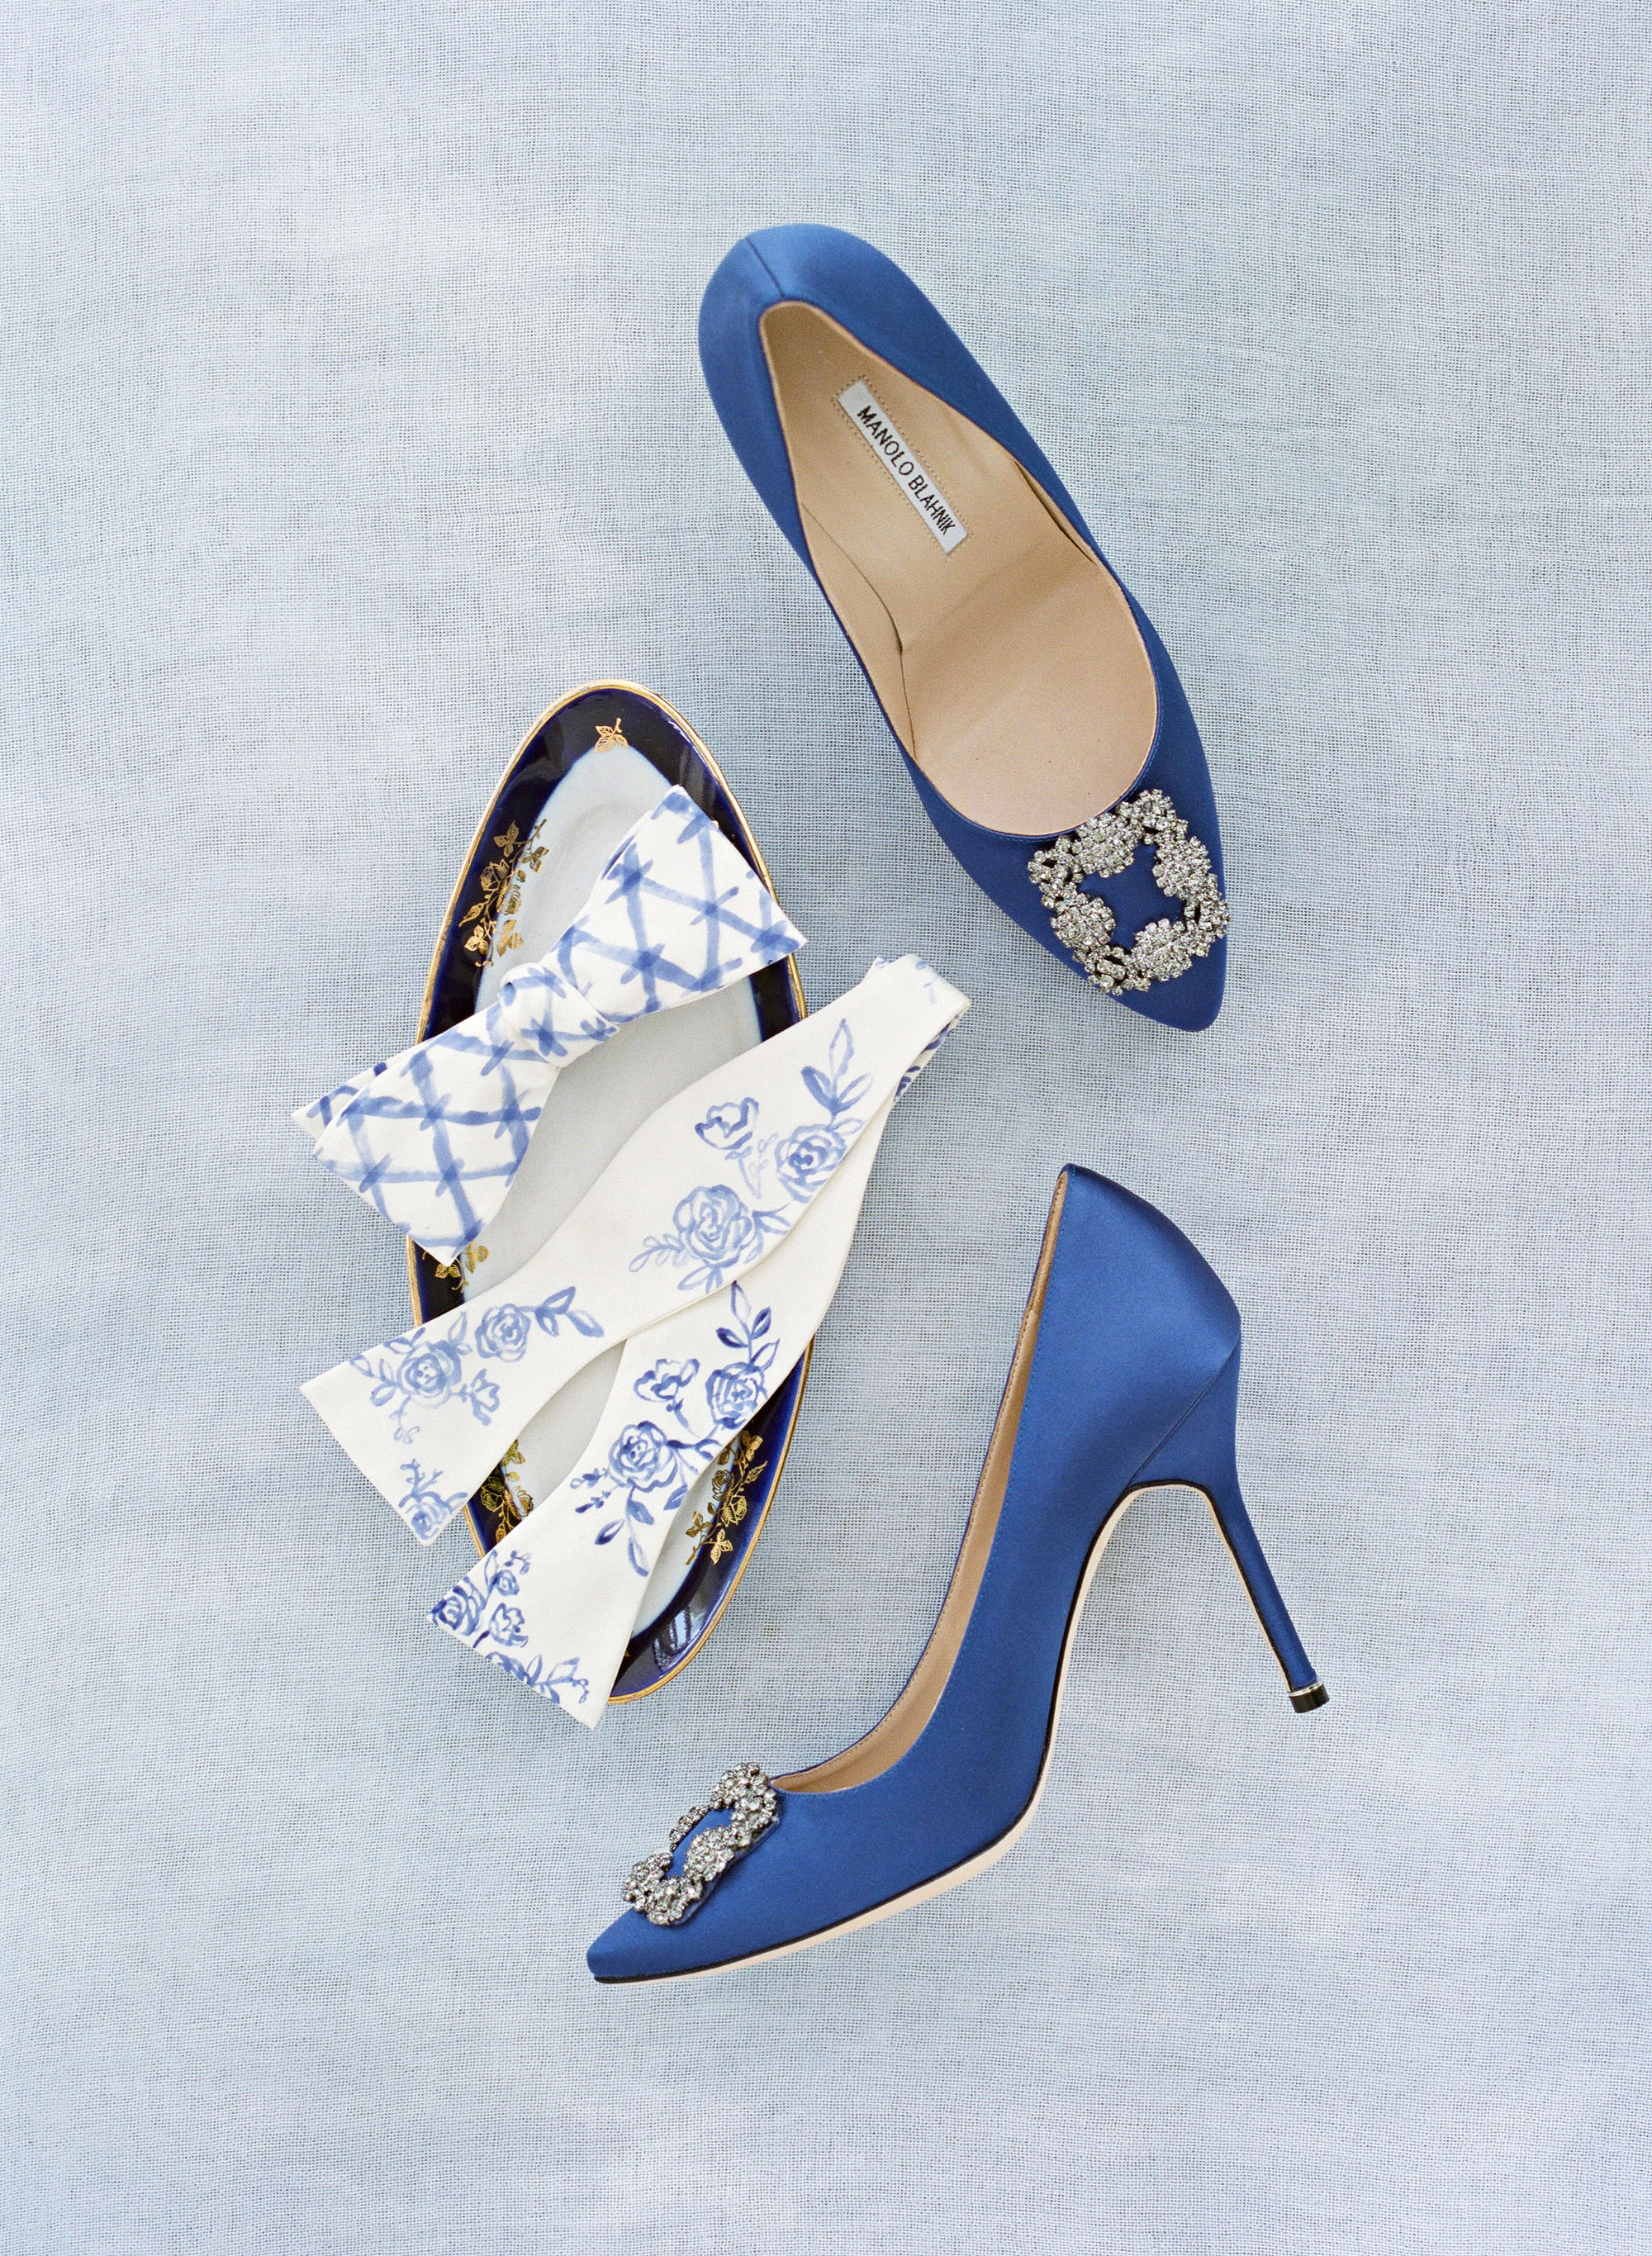 christina matt wedding charleston sc shoes bowtie painted